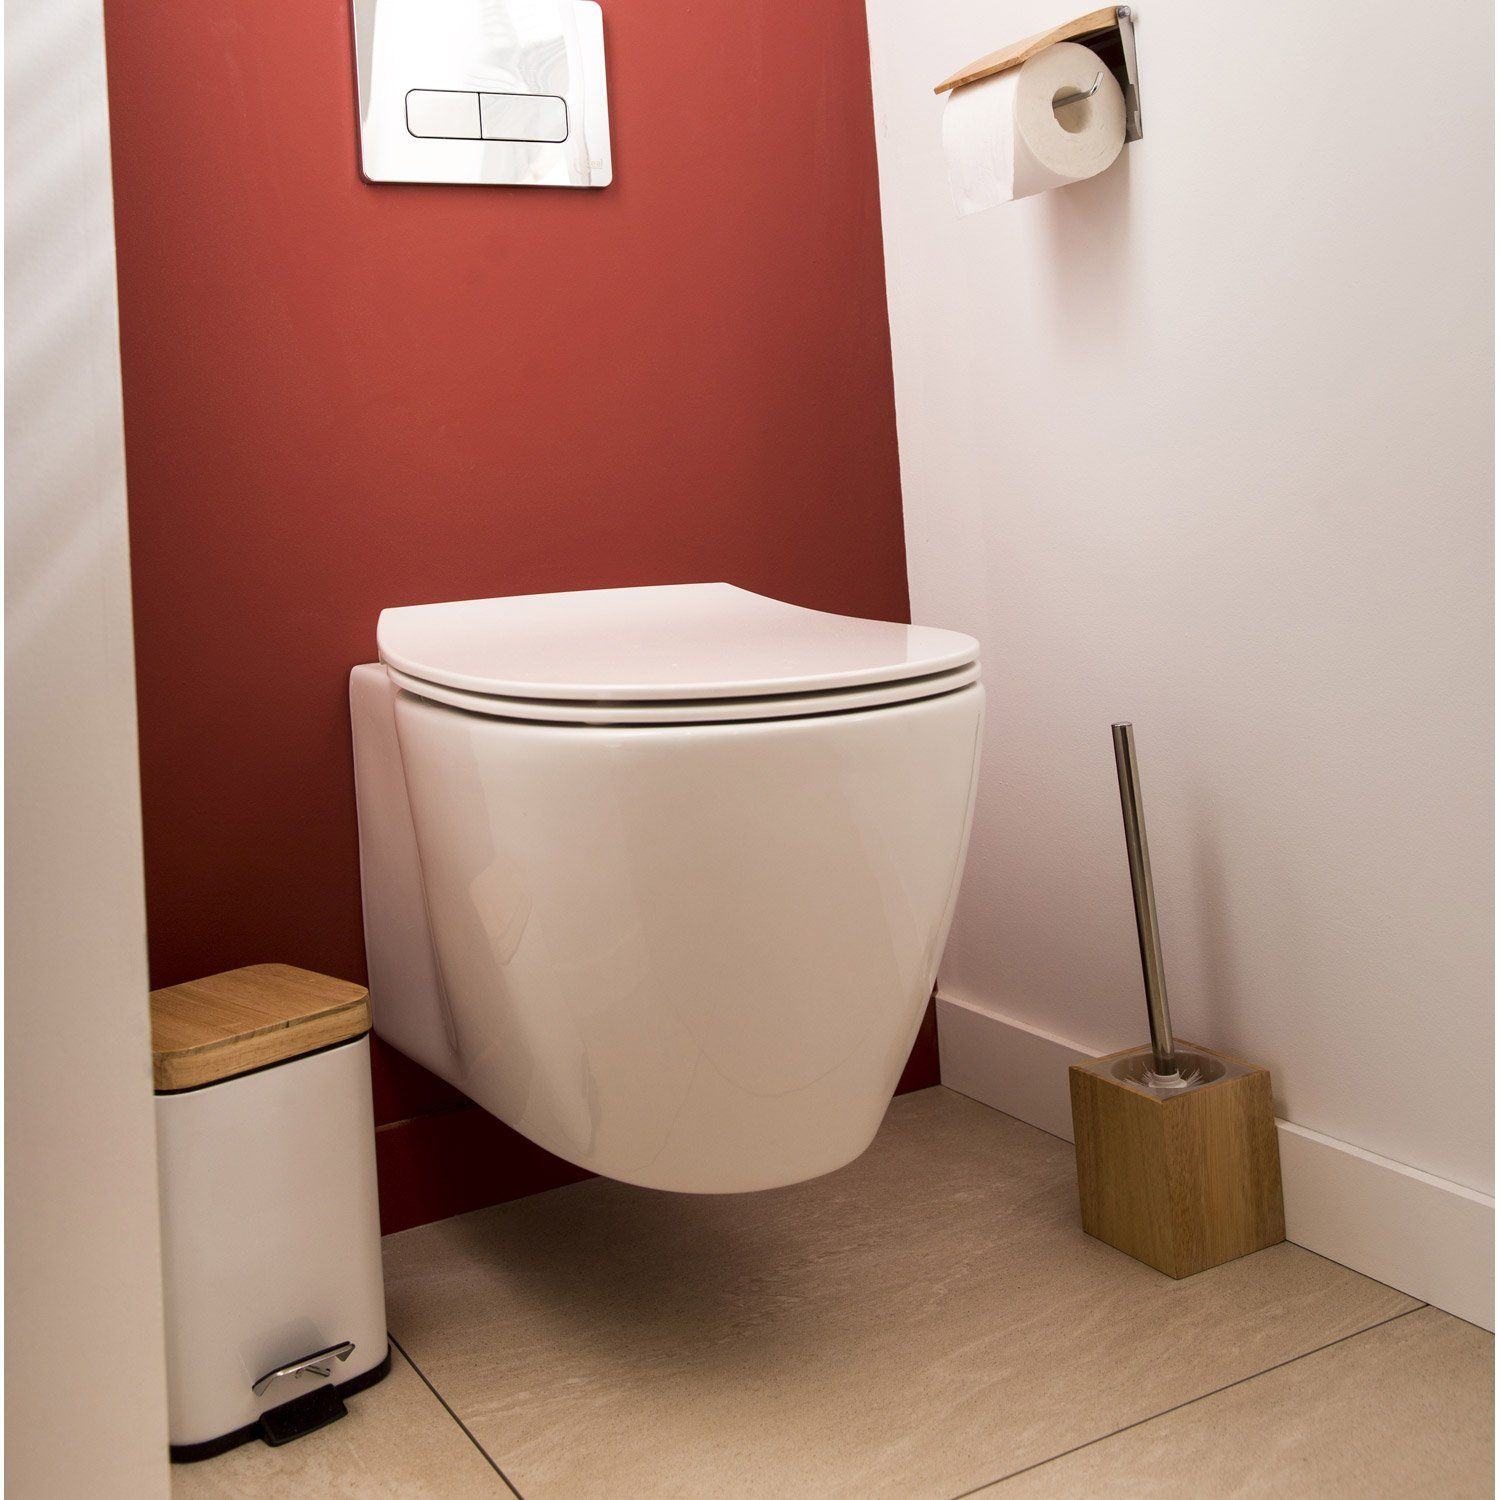 Pack Wc Suspendu Bati Sol Ideal Standard Idealsmart Aquablade Wc Suspendu Pack Wc Suspendu Et Meuble Wc Suspendu